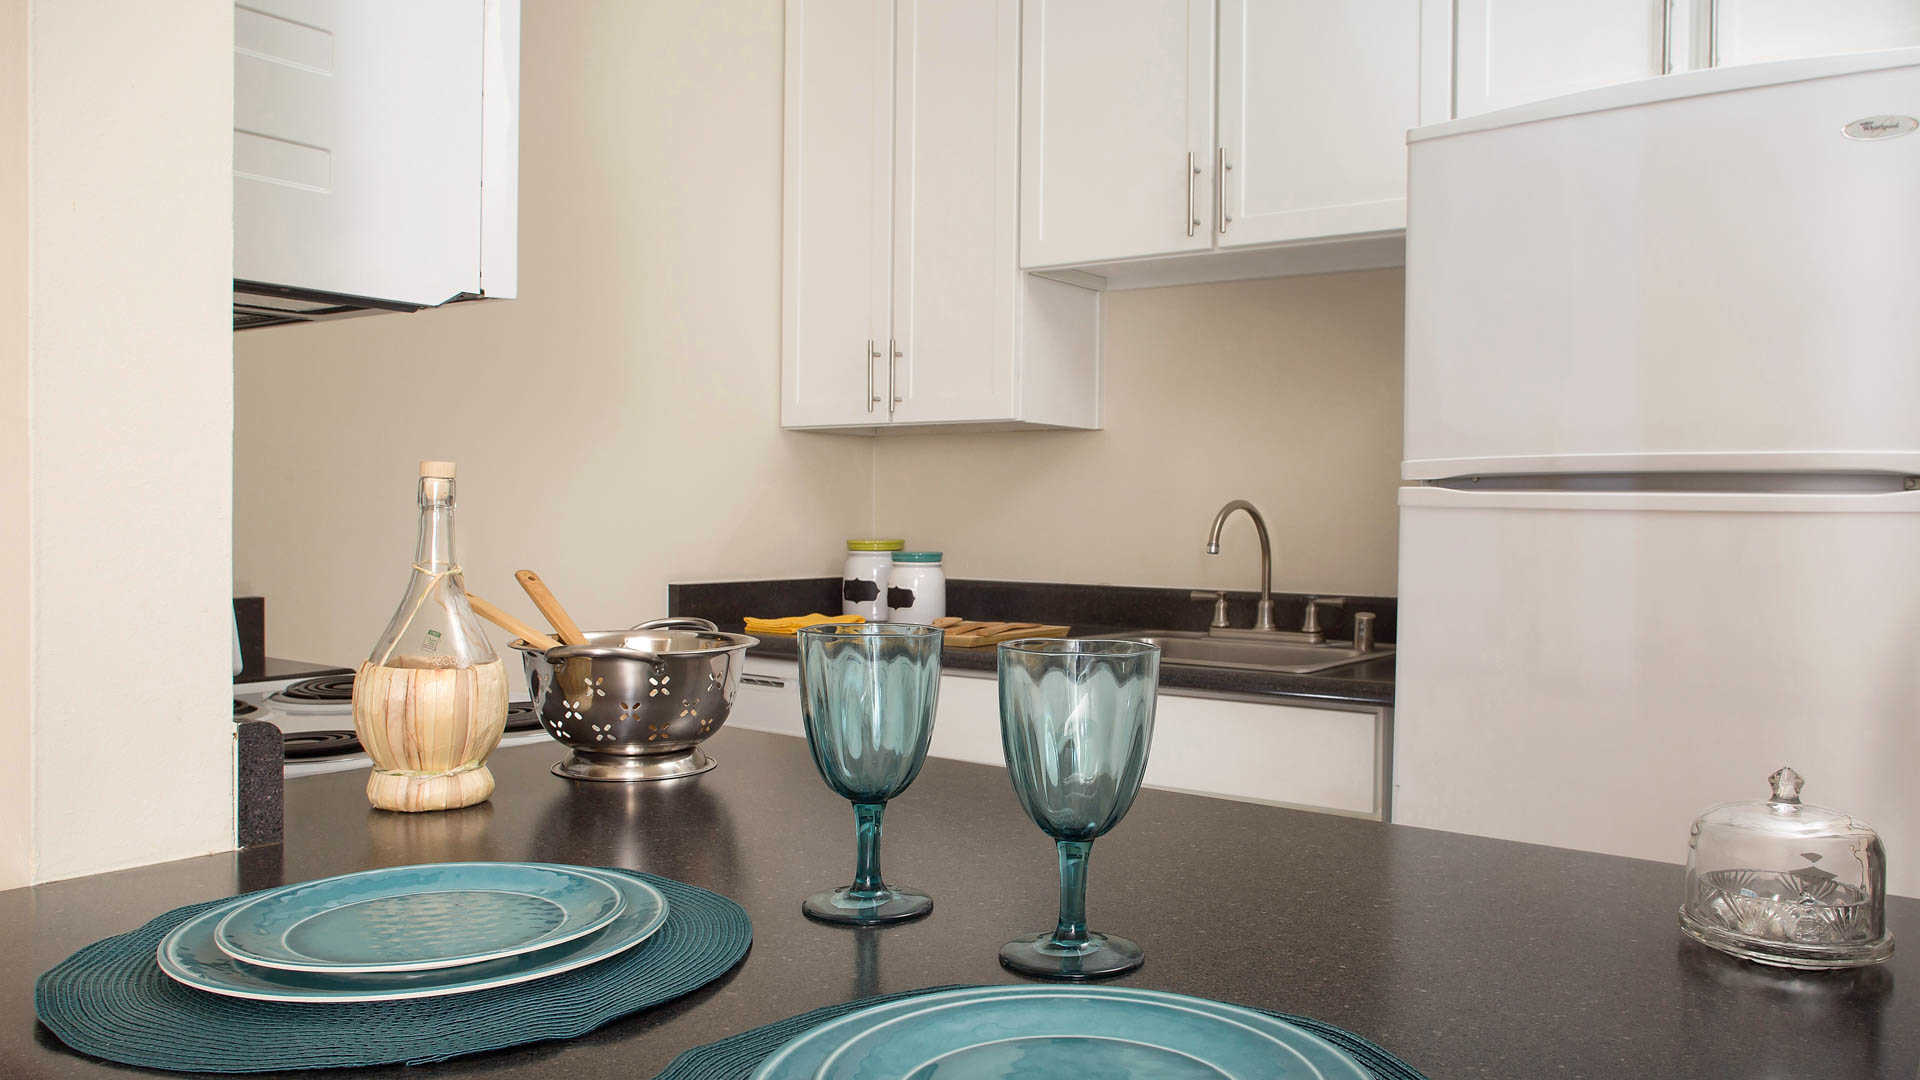 Northpark Extended Stay-Sample Image of Burlingame CA Construction Crew Rental